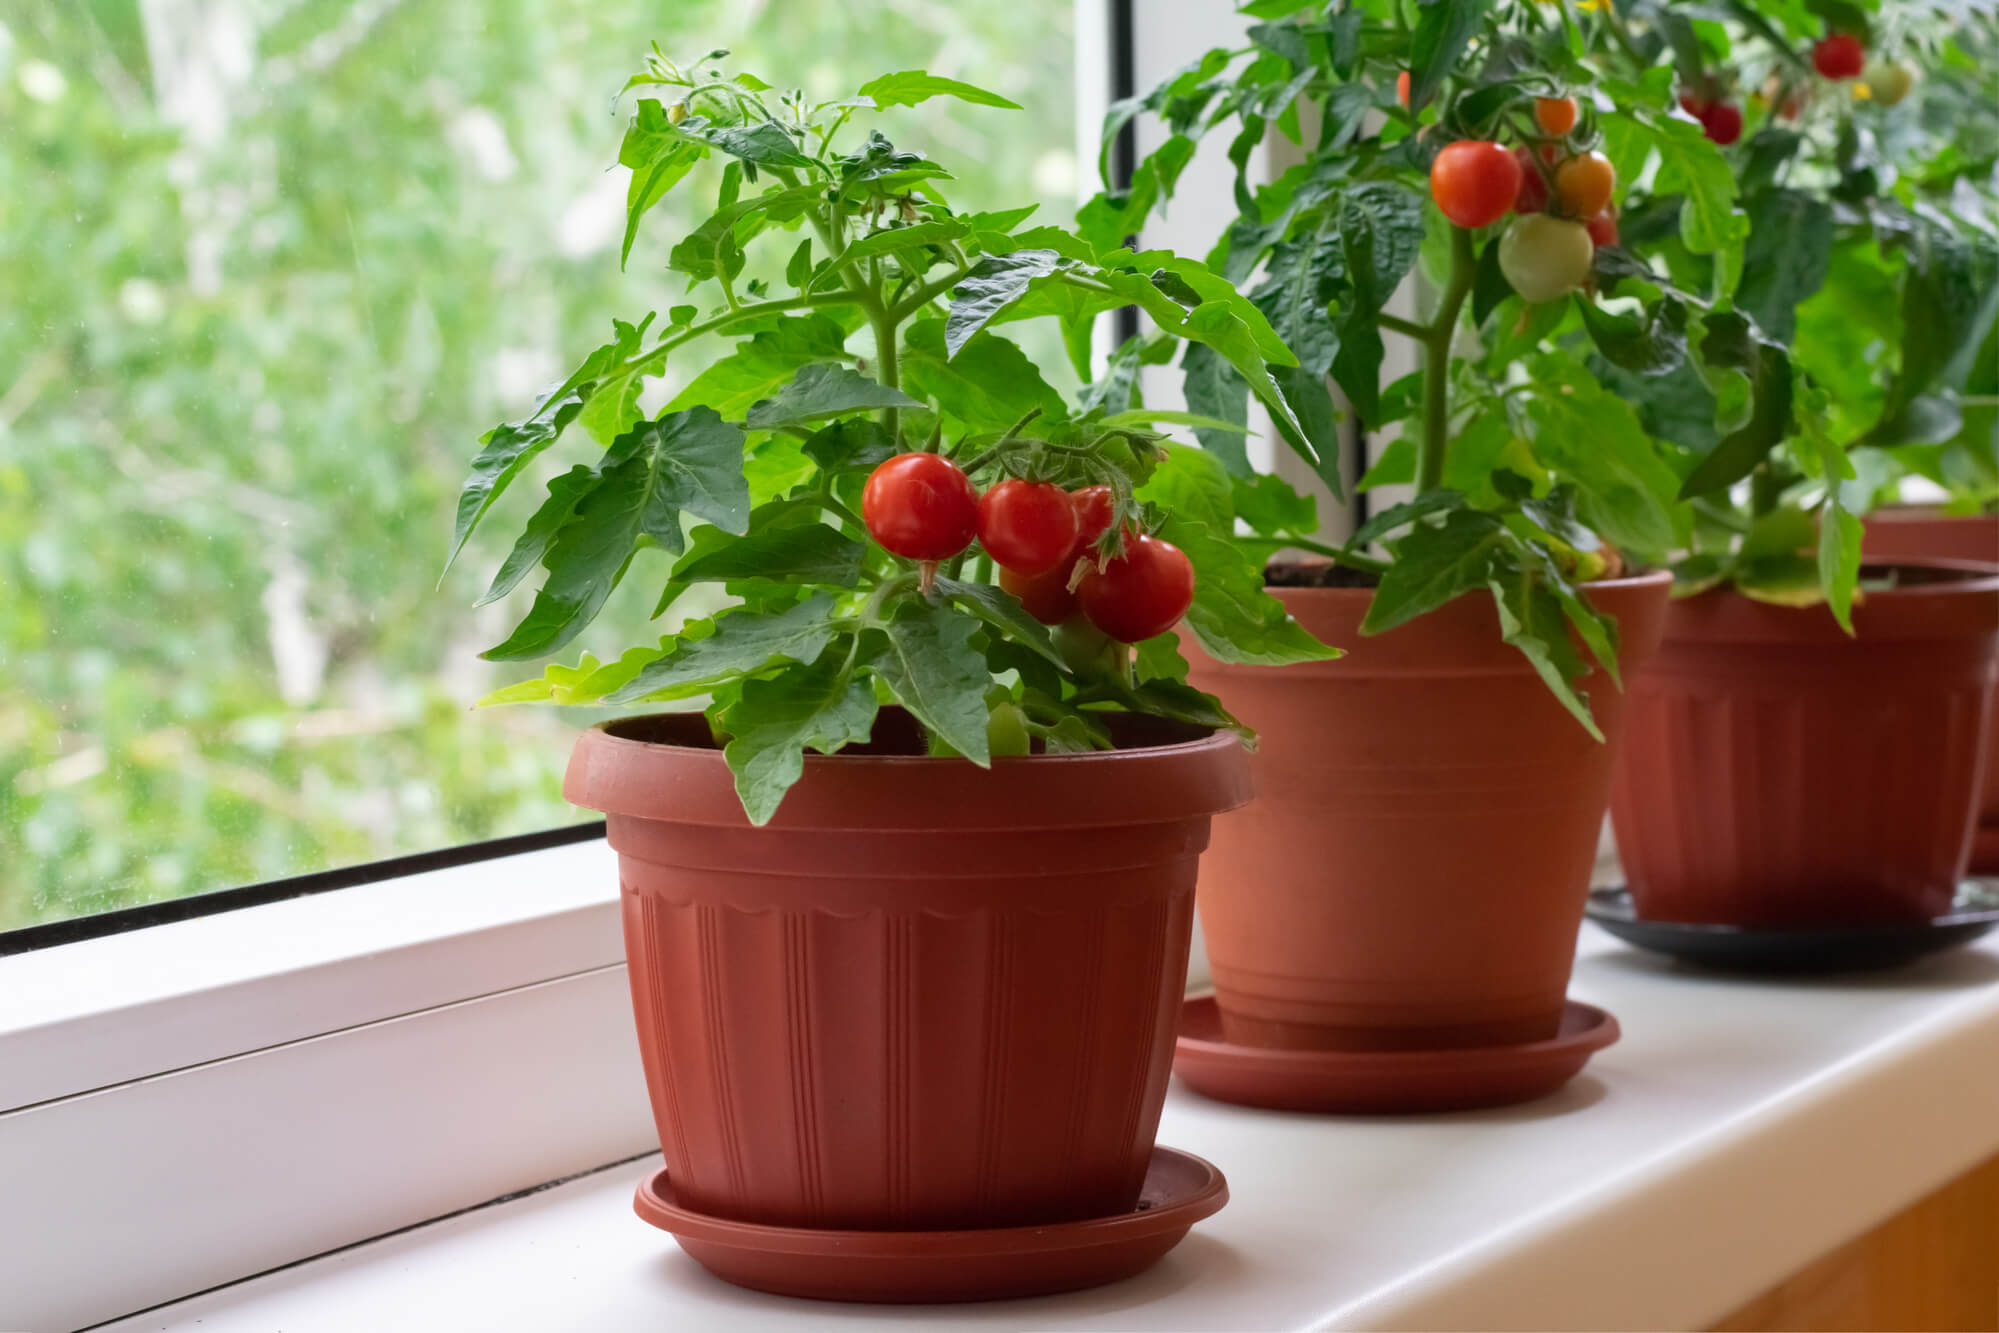 cherry tomato plants on windowsill